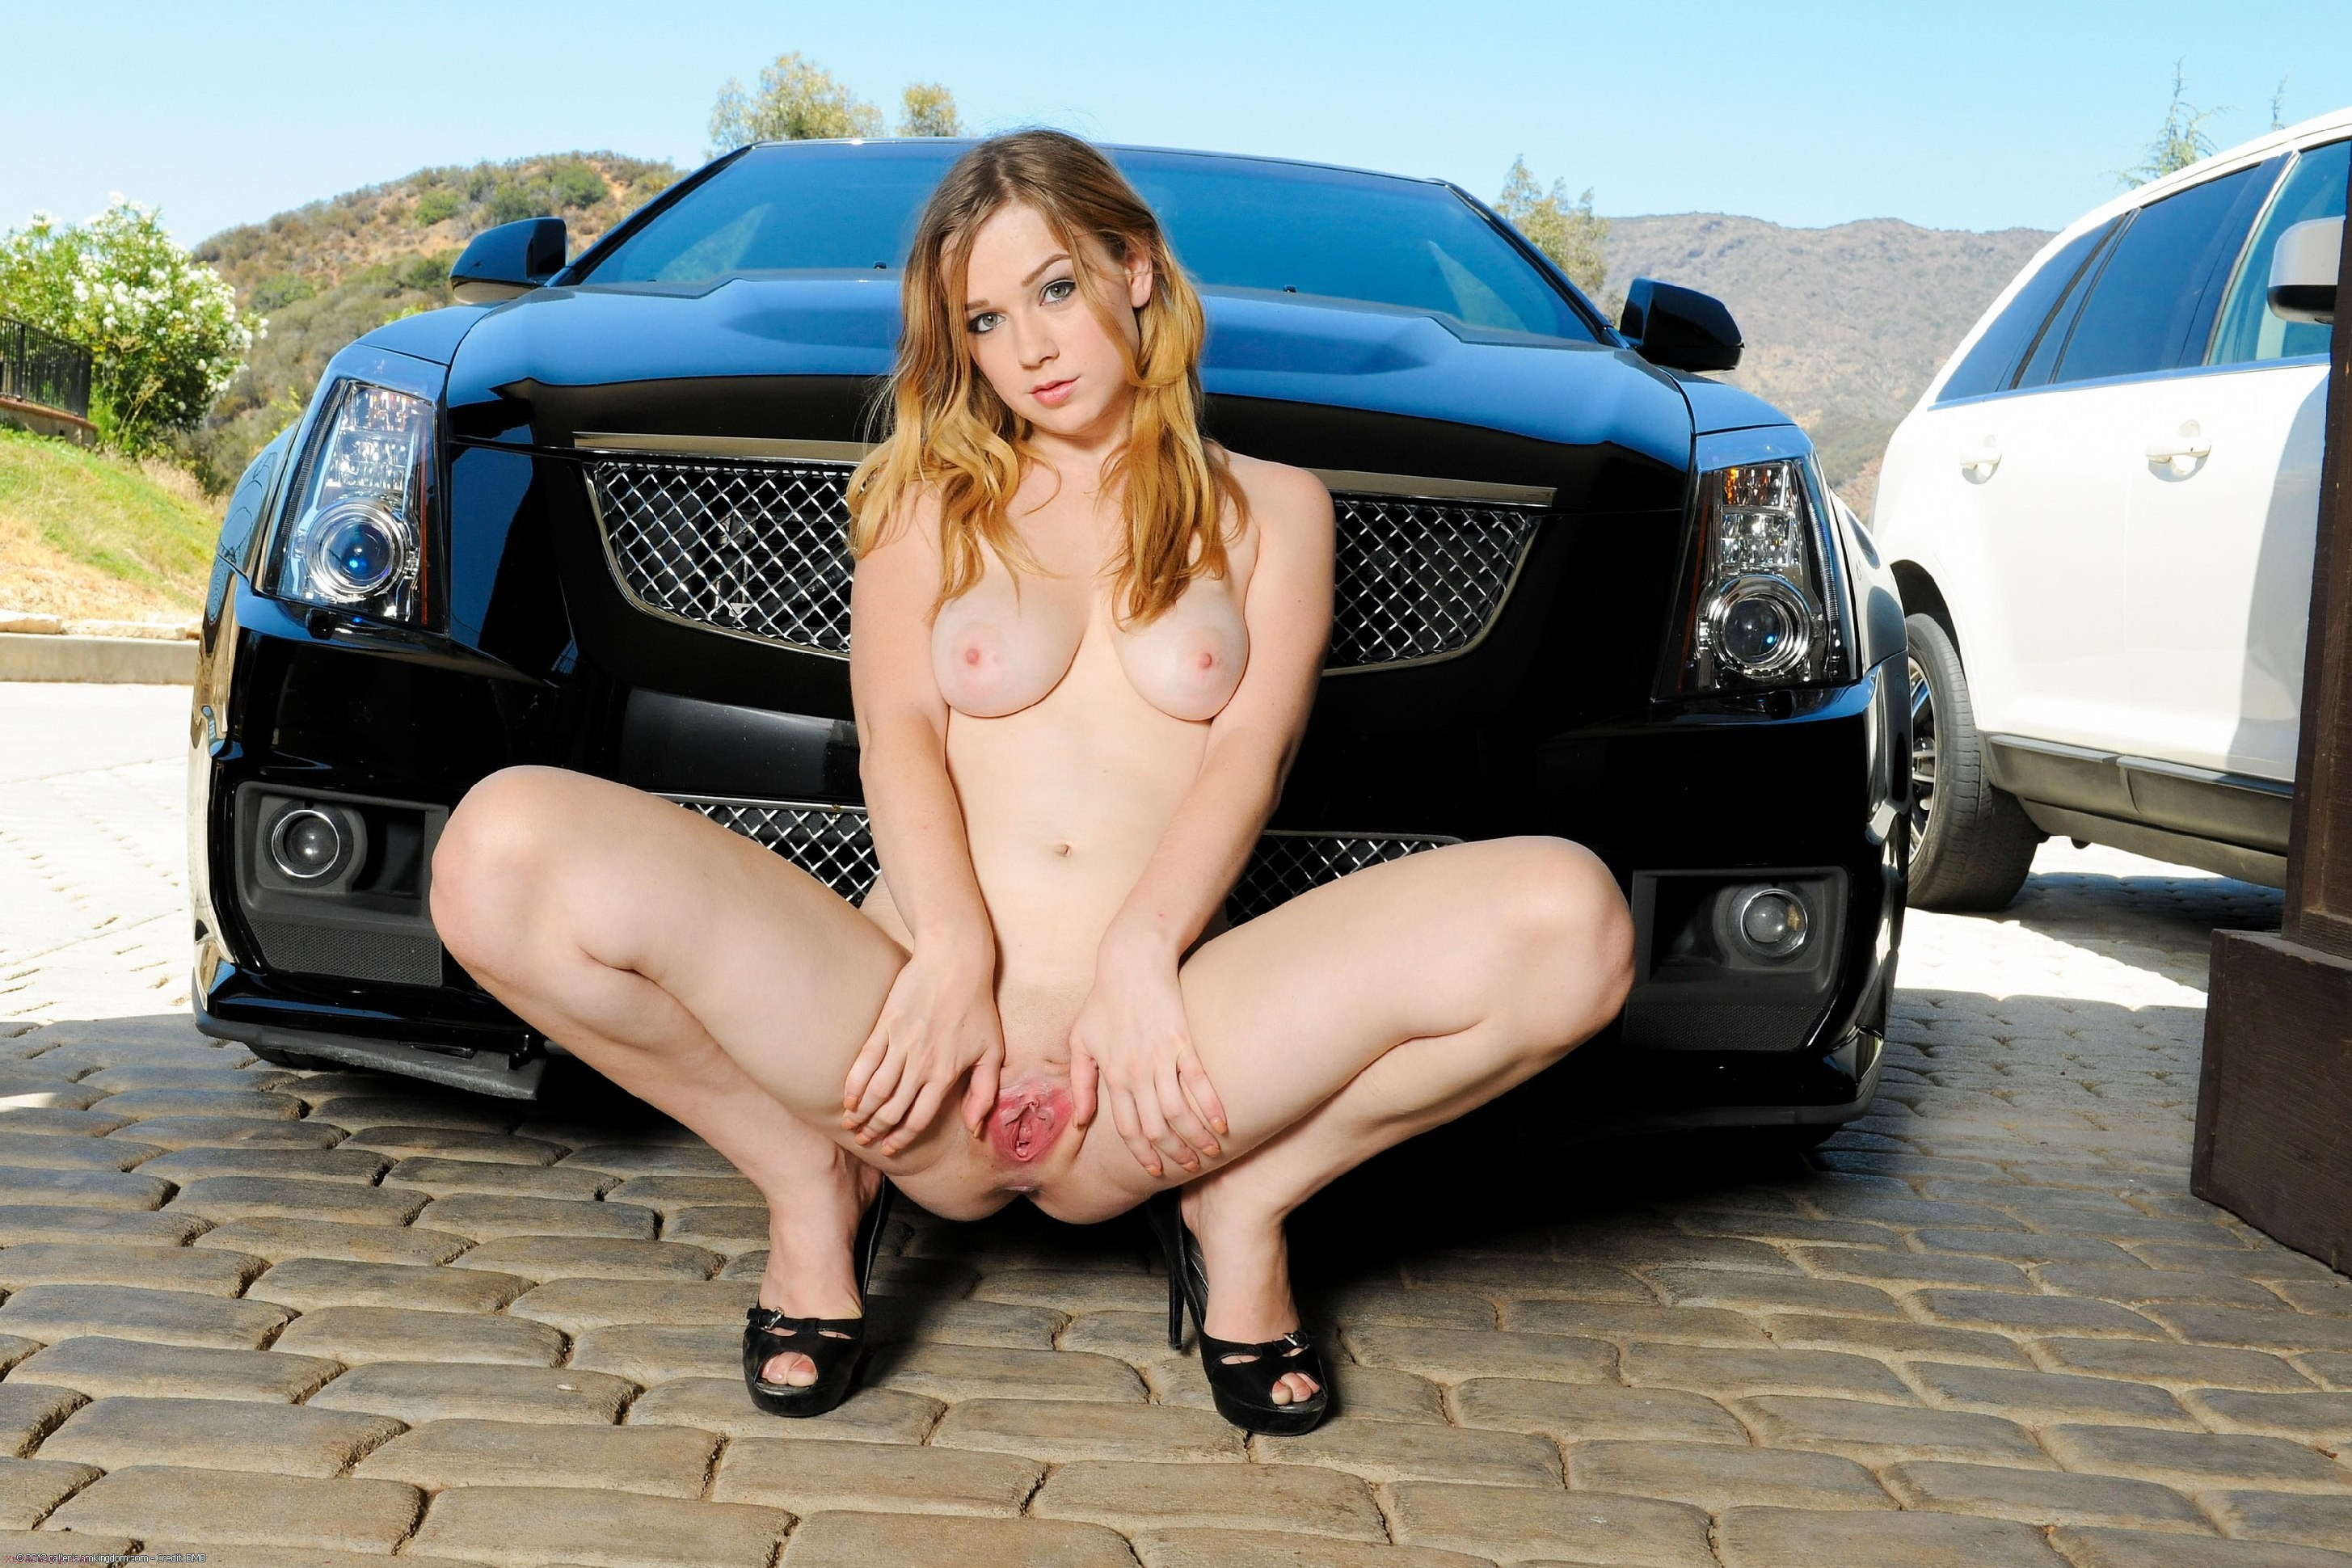 Naked ladies on cars images